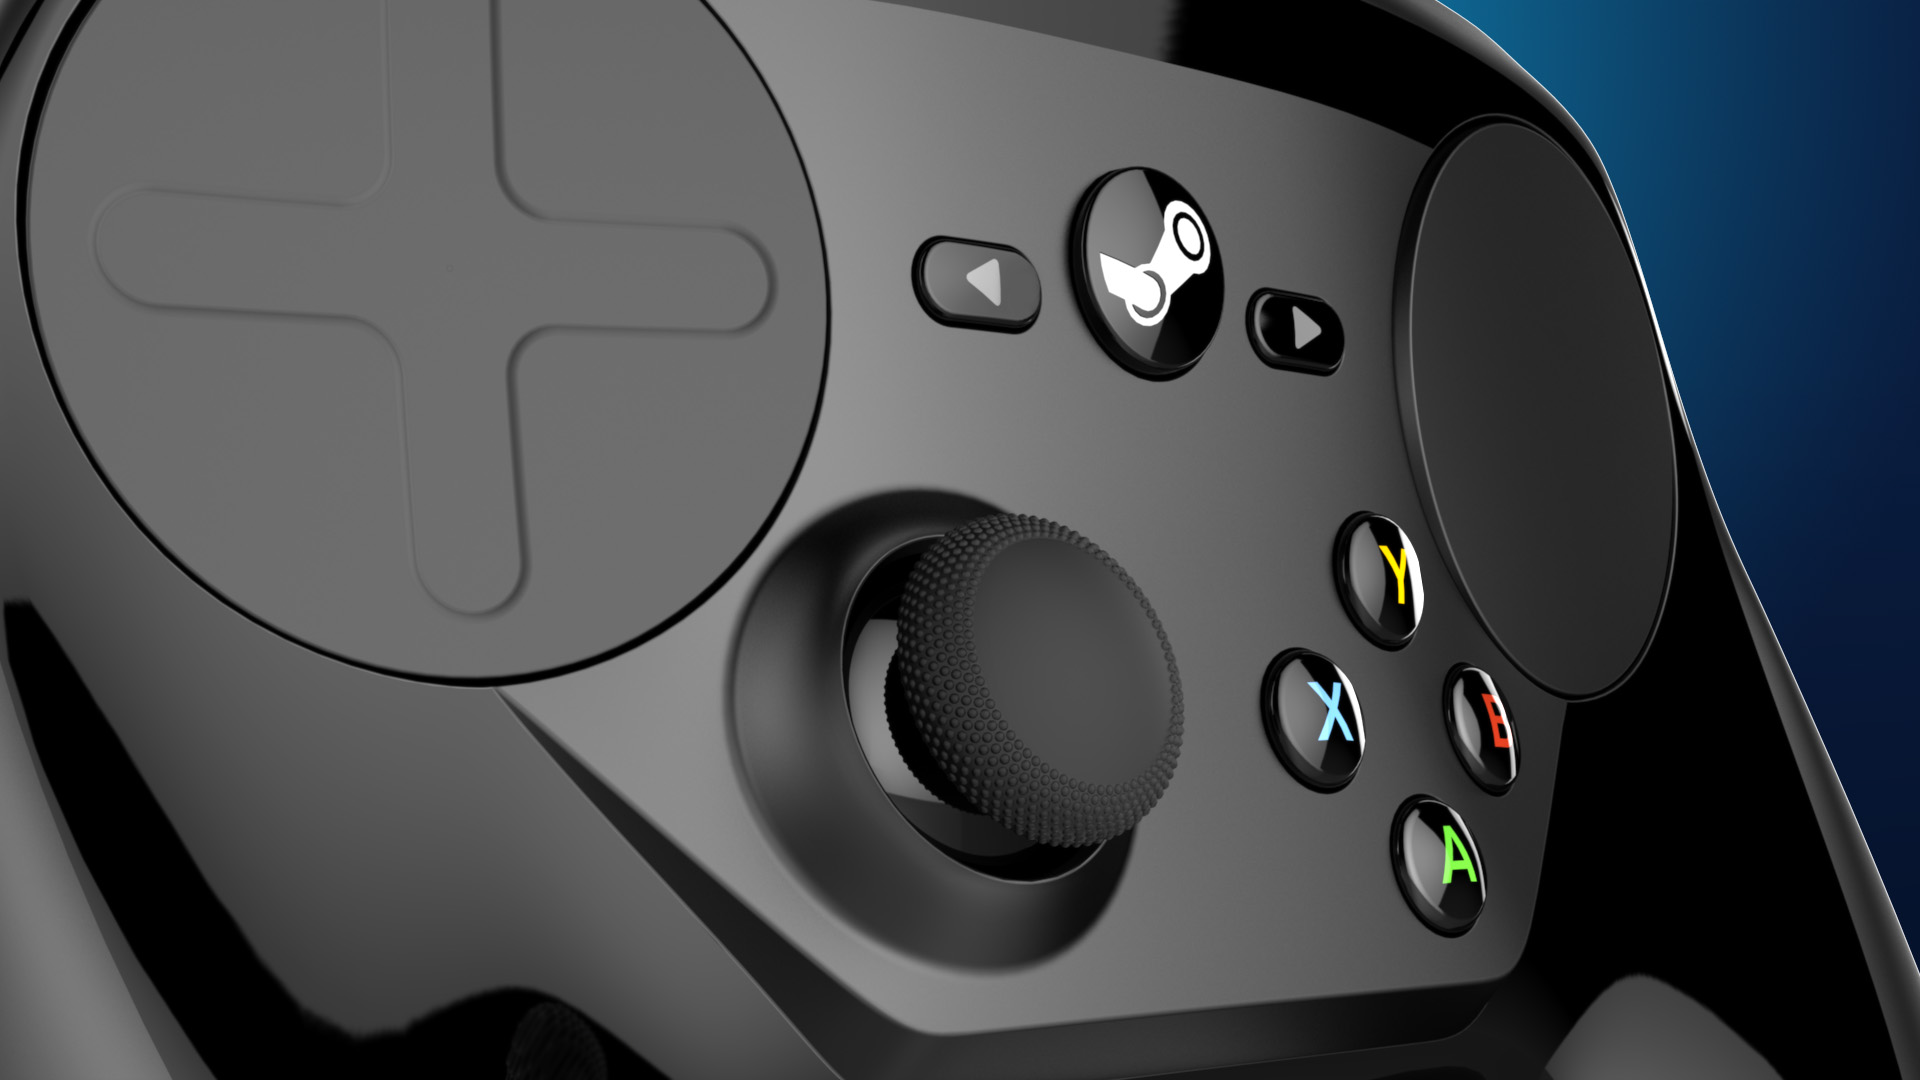 The Best Controller For Steam (Isn't What You Think